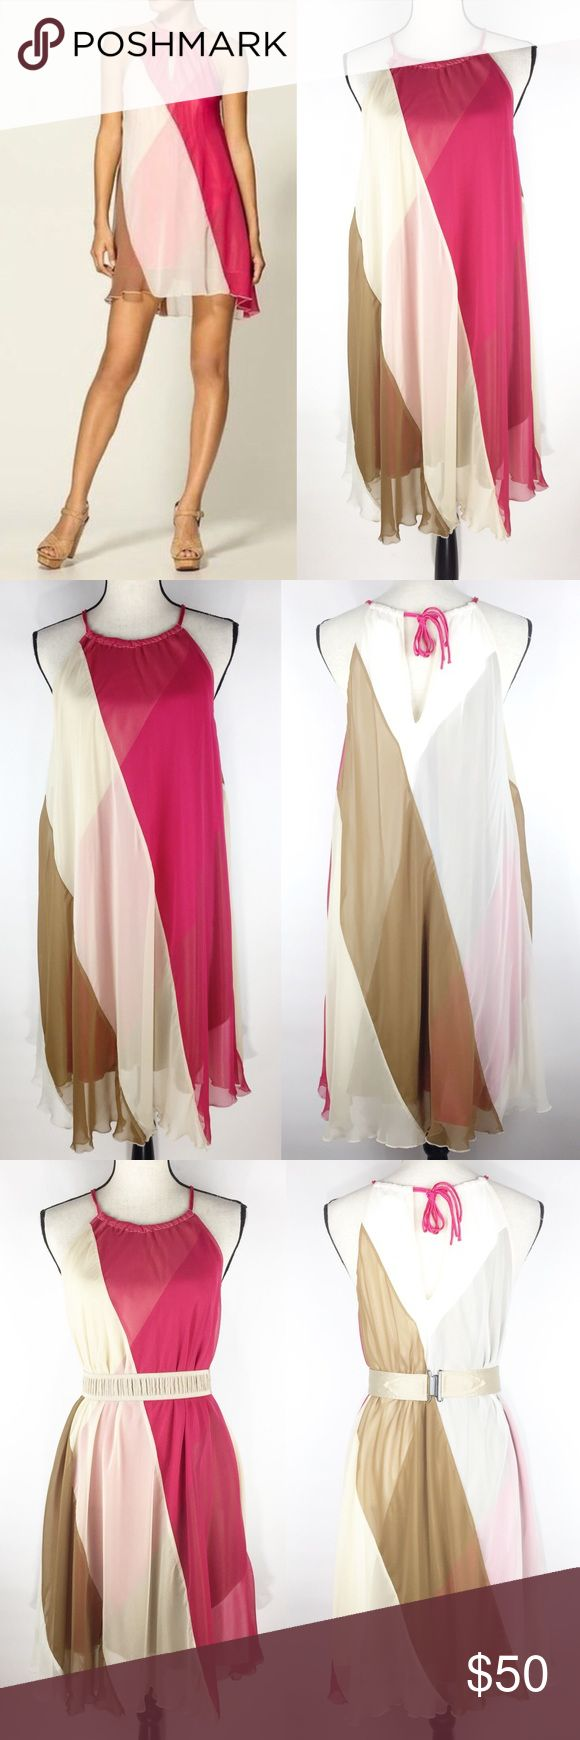 """{Free People} Chiffon Tent Party Cocktail Dress For sale is a gorgeous Free People chiffon tent dress. Two layers. Ties at the neck. Silky smooth feel. Sleeveless. Keyhole neckline. Hot pink, gold and beige colors.  ▪️Size: L ▪️Fabric: 100% polyester Measurements laying flat:  ▪️Length: 35"""" ▪️Pit to pit: 21"""" ▪️Condition: Excellent preowned condition. Clean. No stains, rips or tears. *** Belt not included. Free People Dresses"""